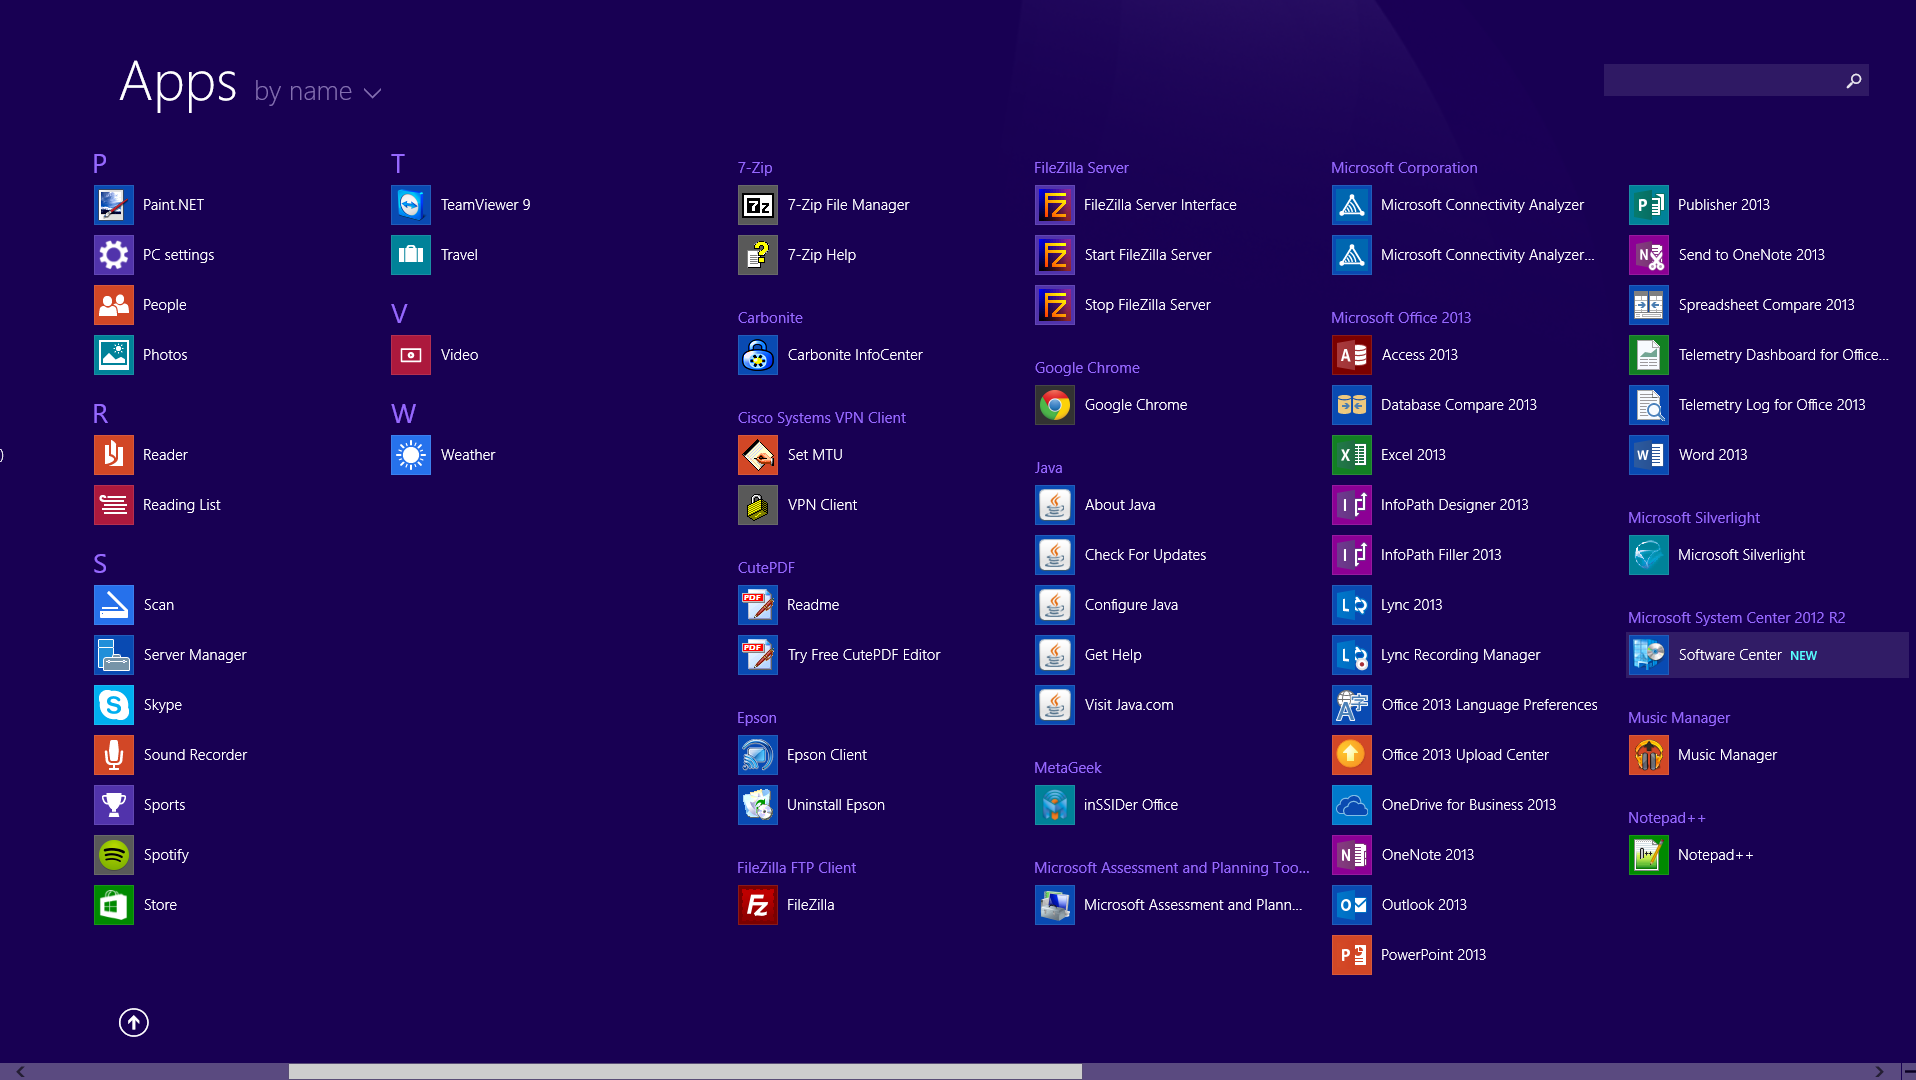 Windows 8 - Start Menu - System Center 2012 R2 - Software Center